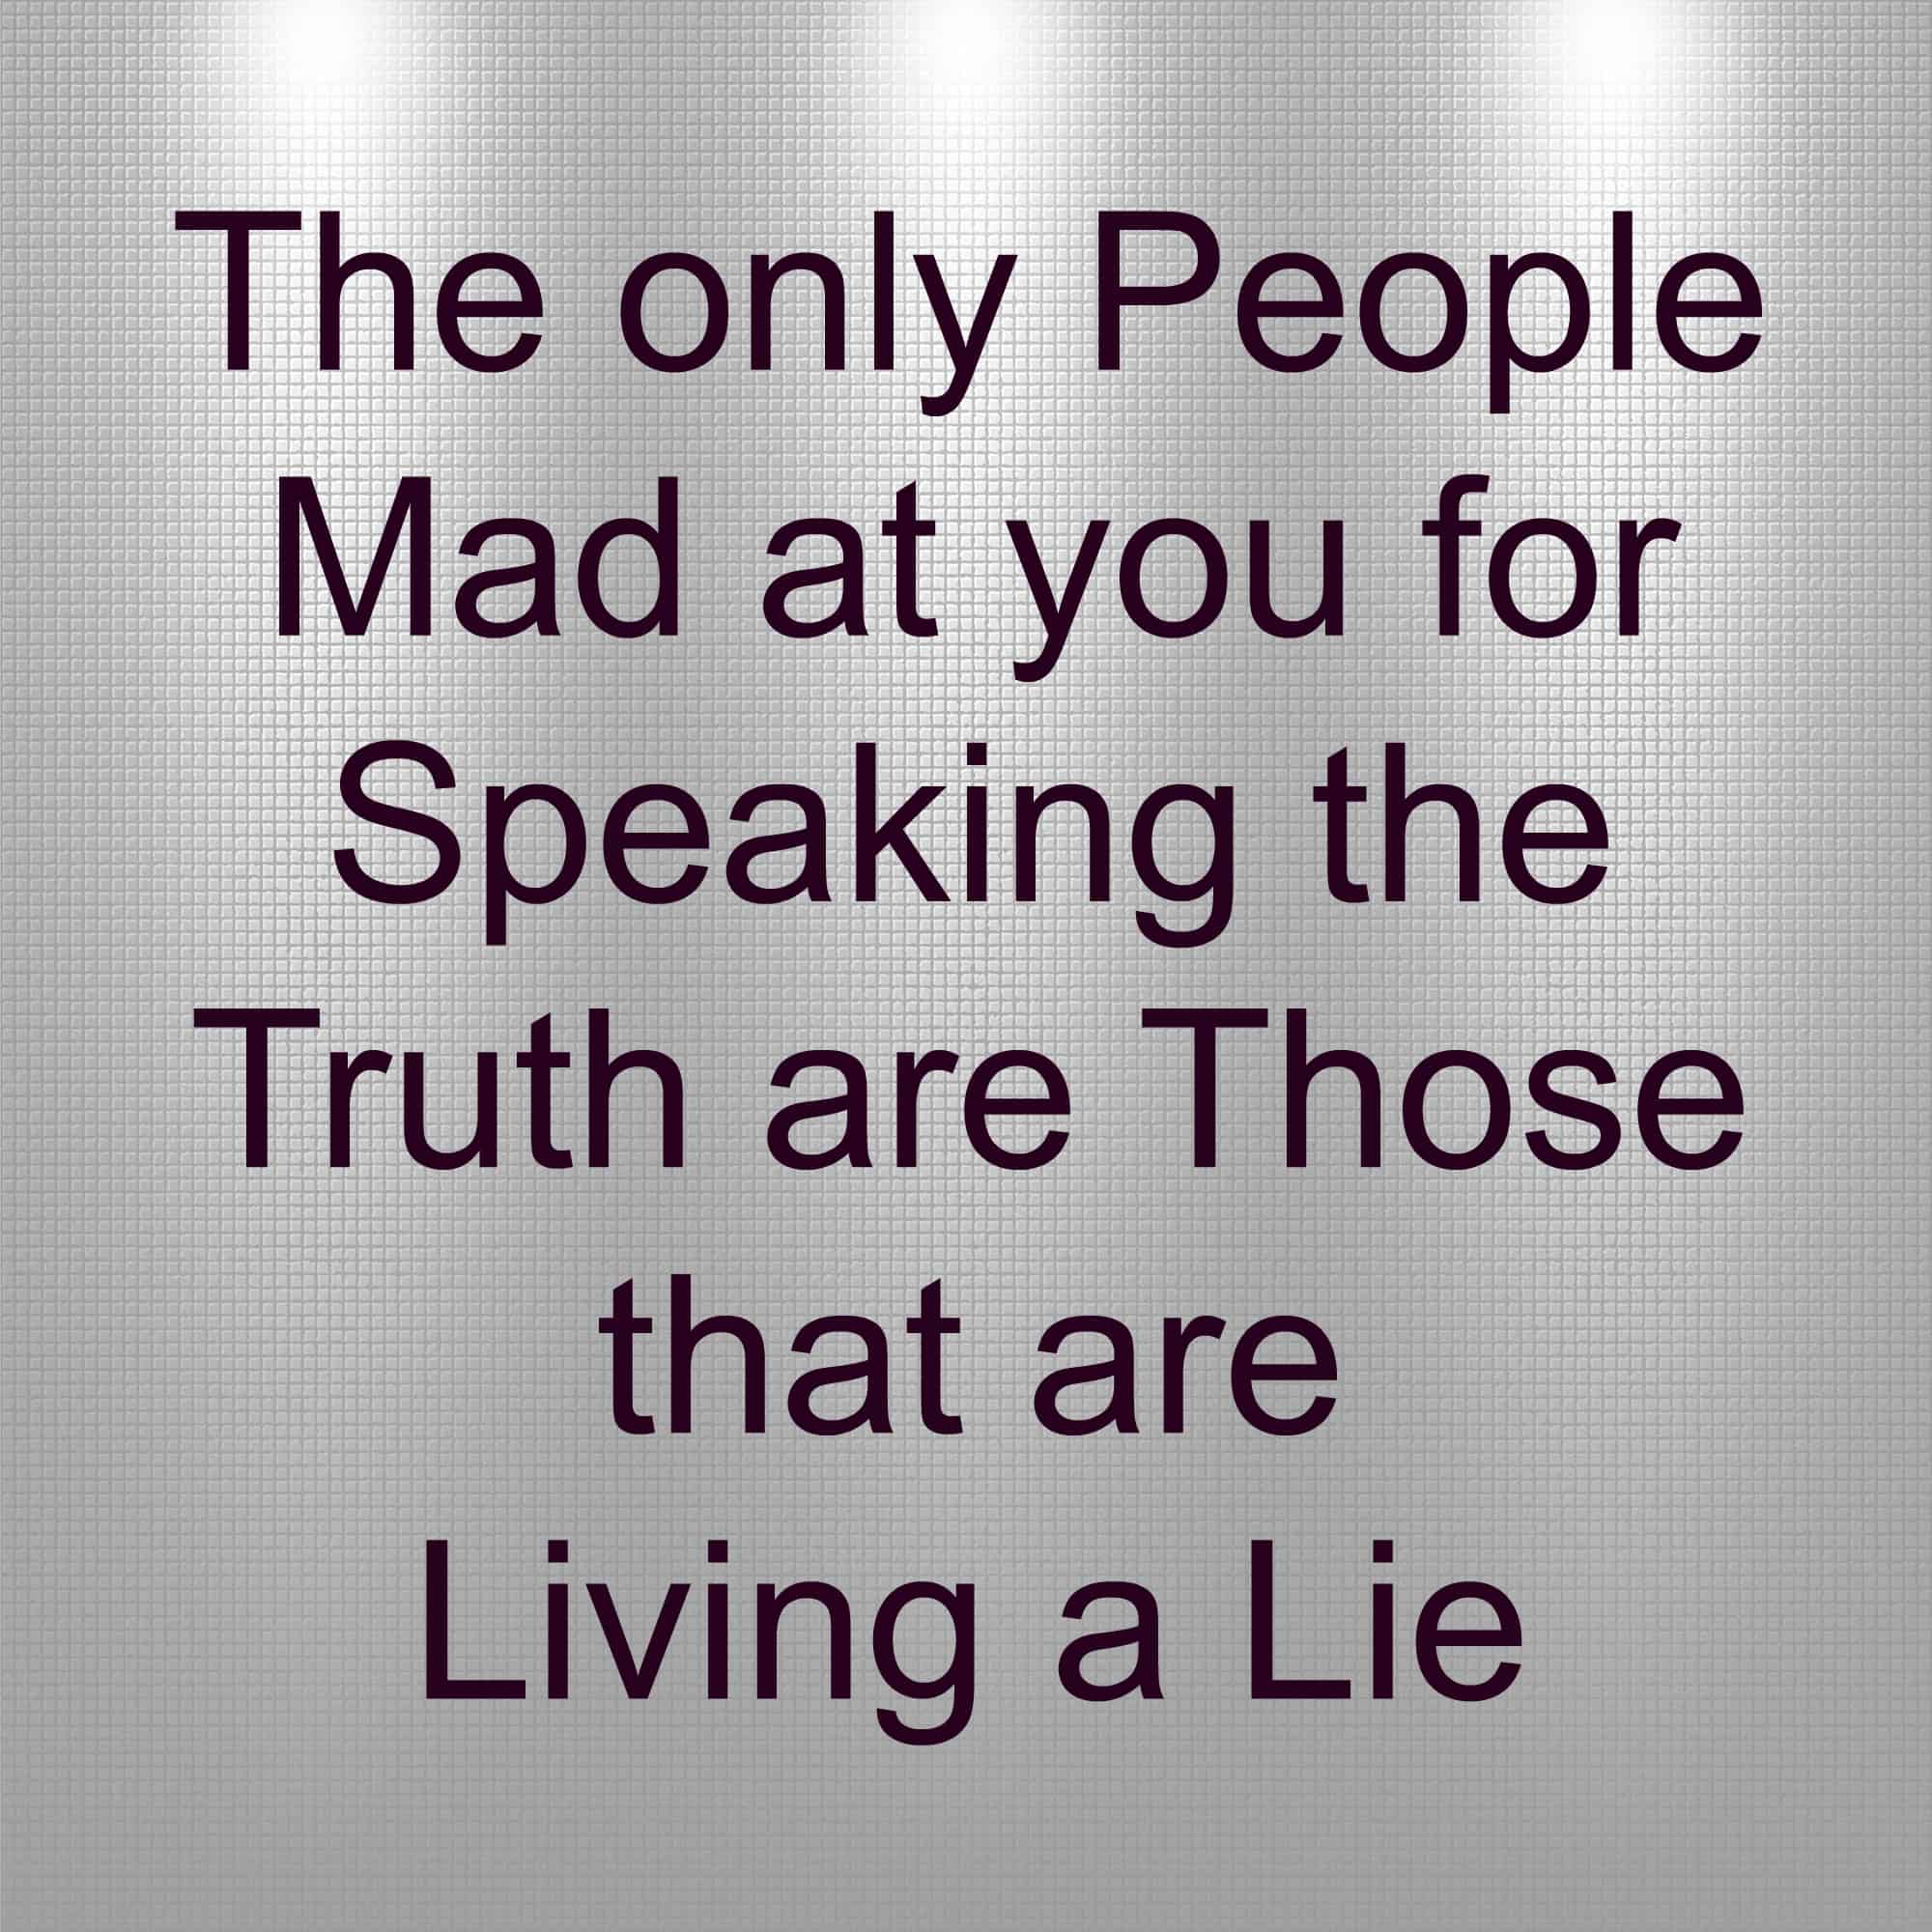 The Only People Mad at you for speaking the truth are those that are living a lie. Cheaters, liars, dishonesty